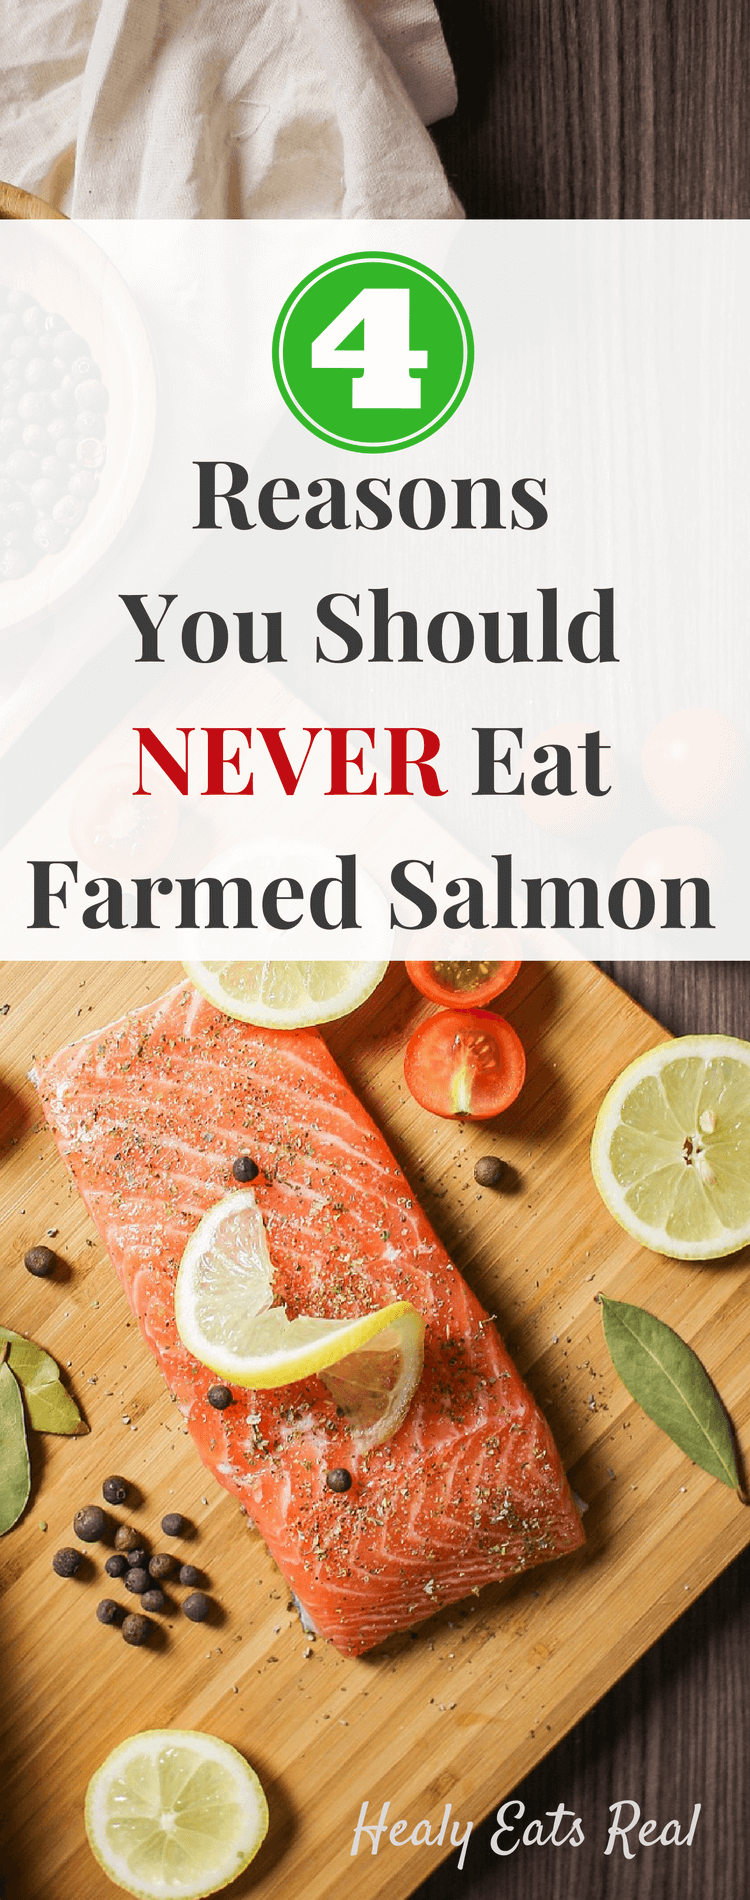 4 Reasons You Should NEVER Eat Farmed Salmon - Farmed salmon vs. wild salmon. Which is healthier? You may be surprised to learn about the dangers of farmed salmon and its toxic contents. #salmon #healthyeating #farming